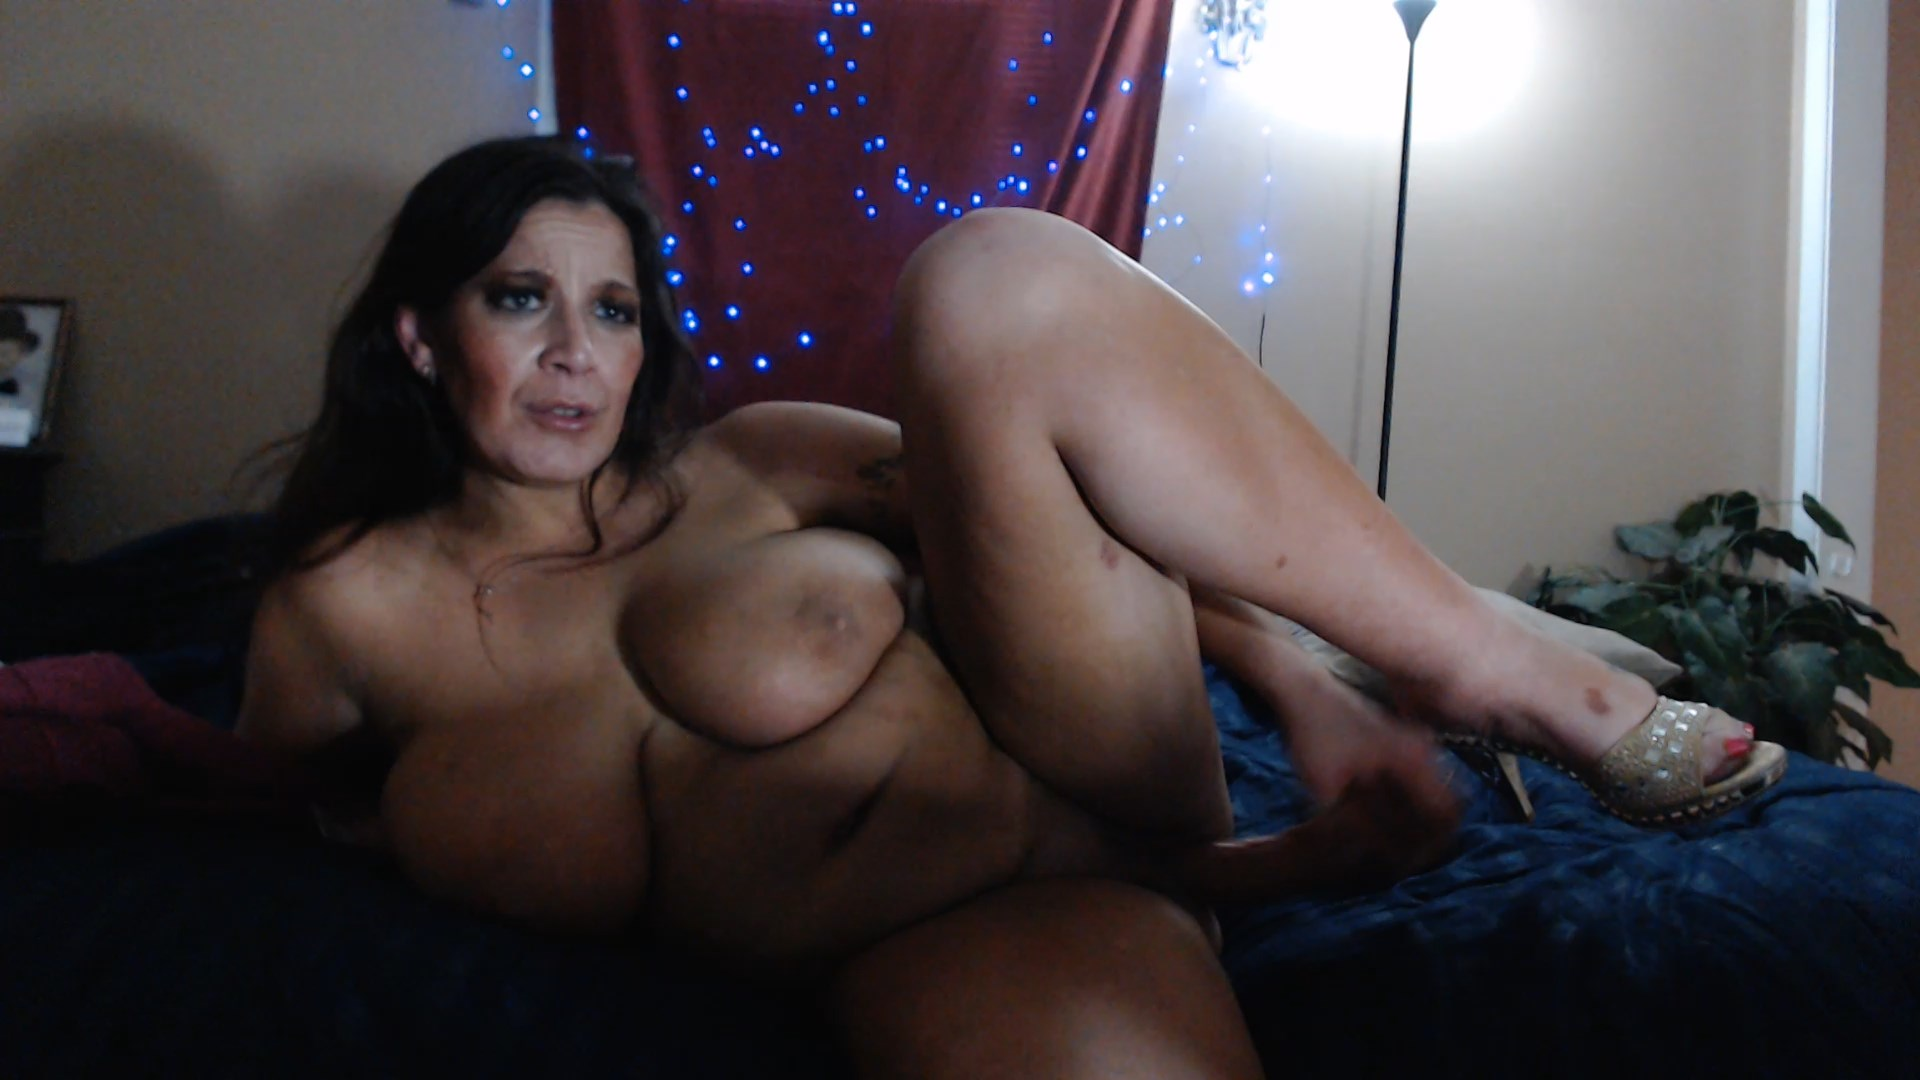 Sexy Sicilian xxx - Mommy Wants to Take Care of You Forever